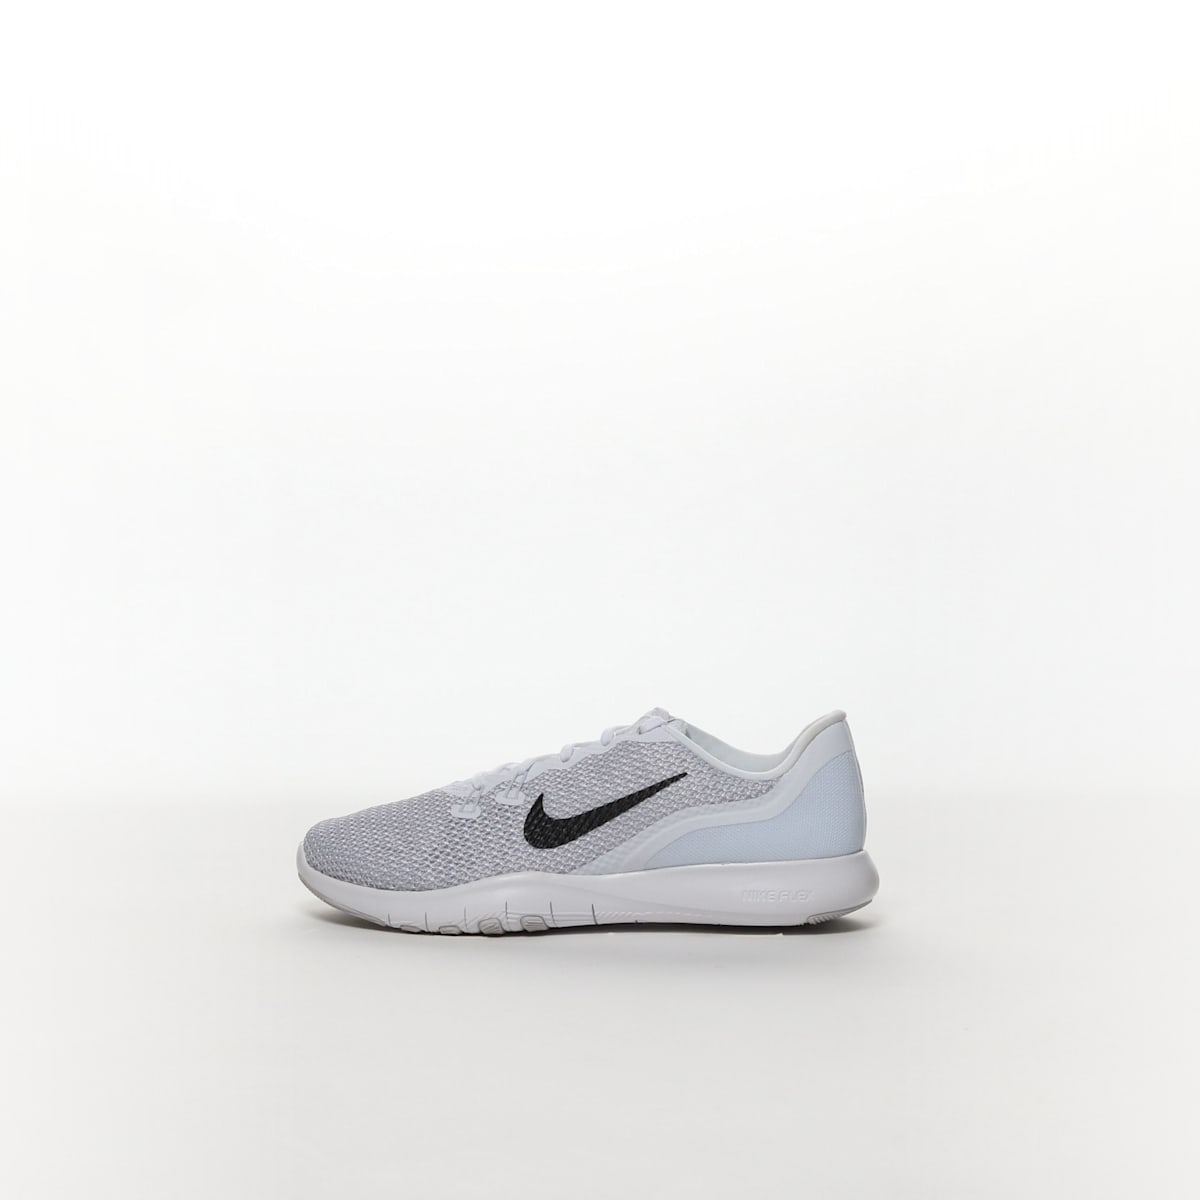 b5a834dbf00 Women s Nike Flex TR 7 Training Shoe - WHITE M SILV – Resku